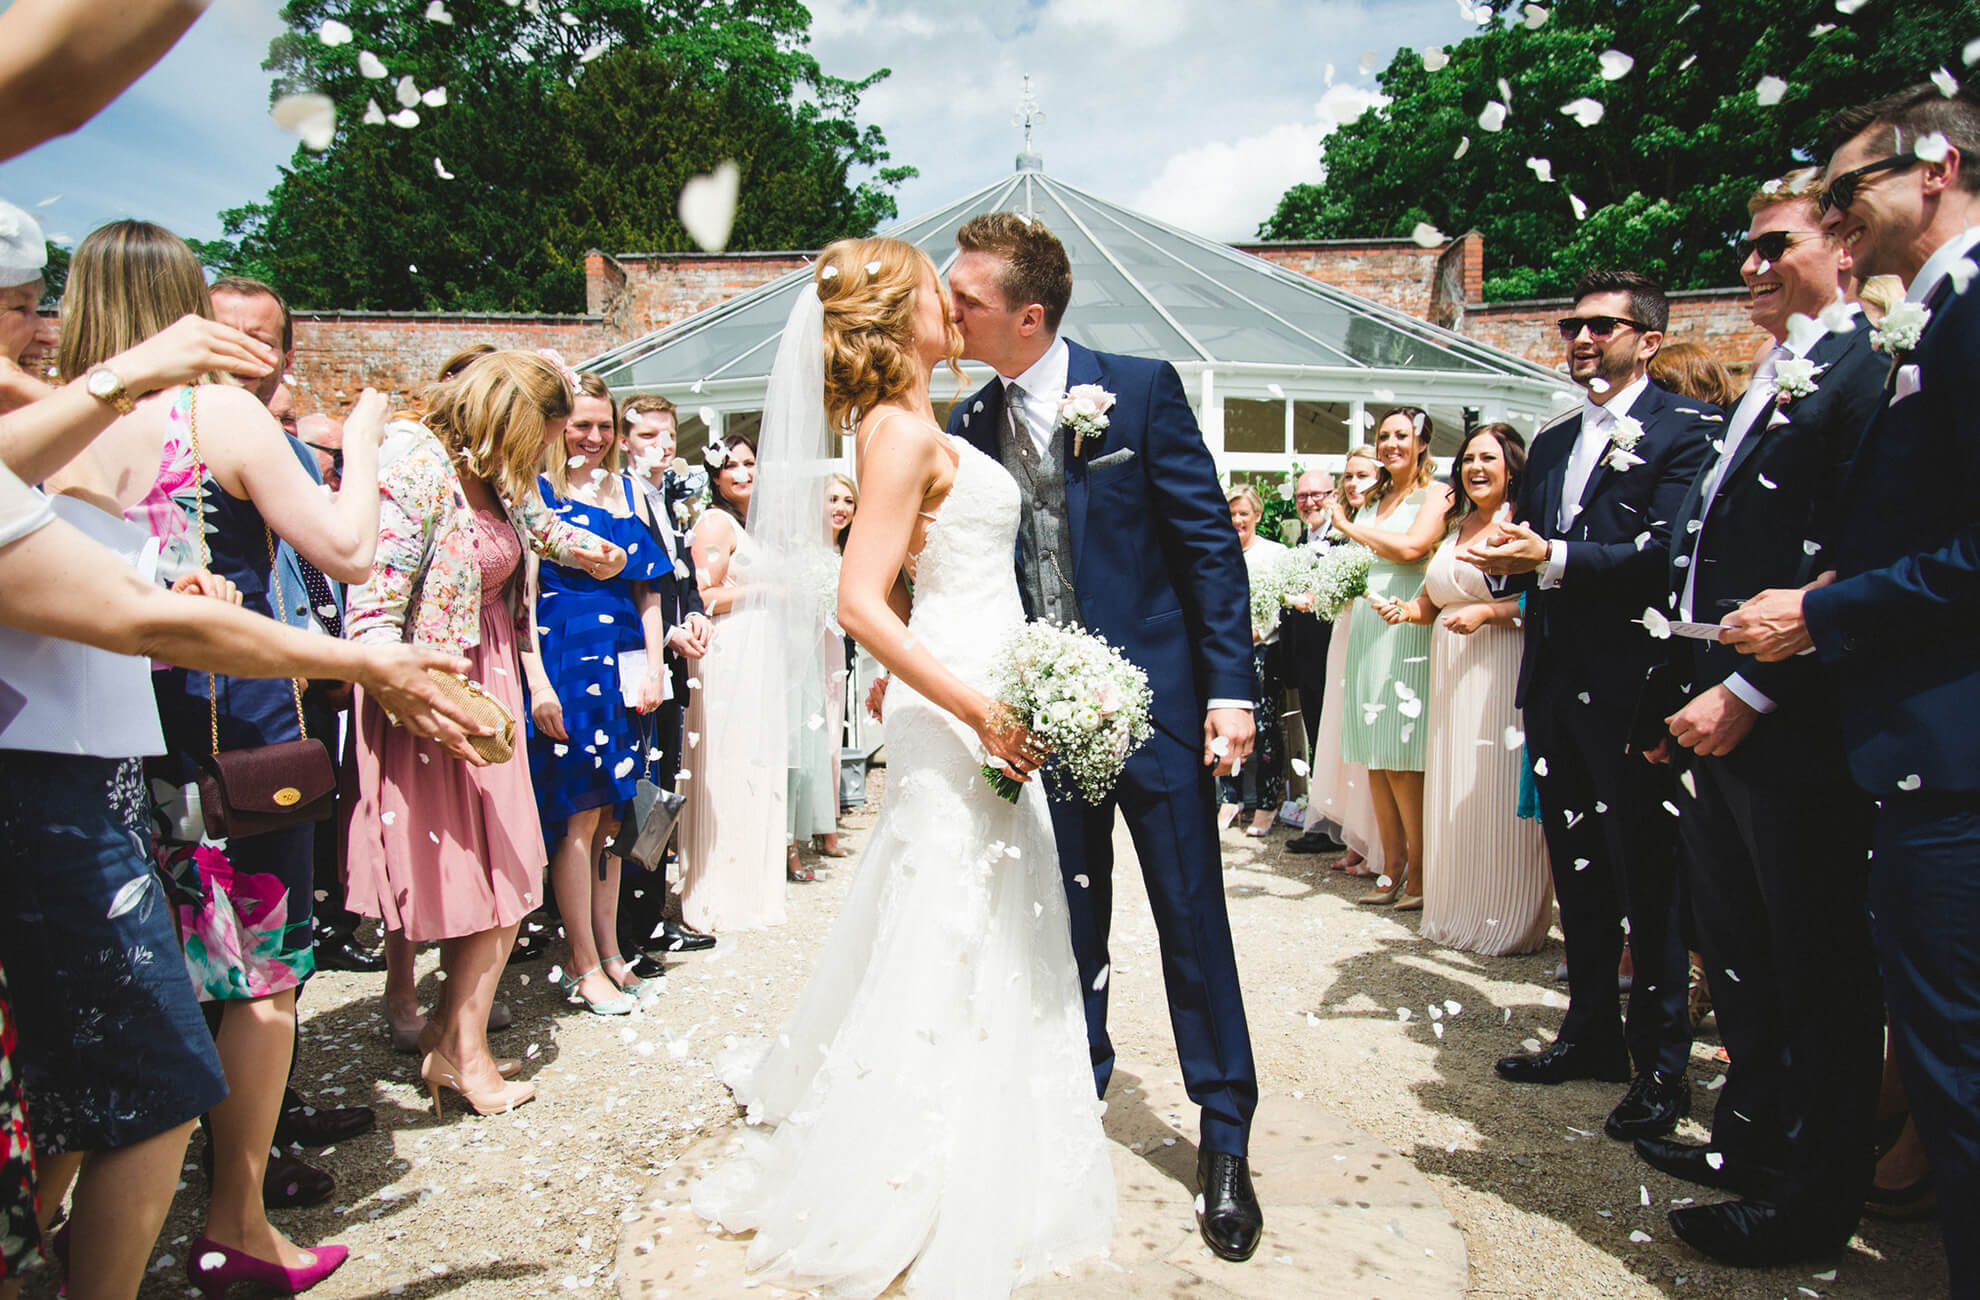 Newlyweds enjoy a confetti moment with guests outside the Glasshouse at Combermere Abbey wedding venue in Cheshire